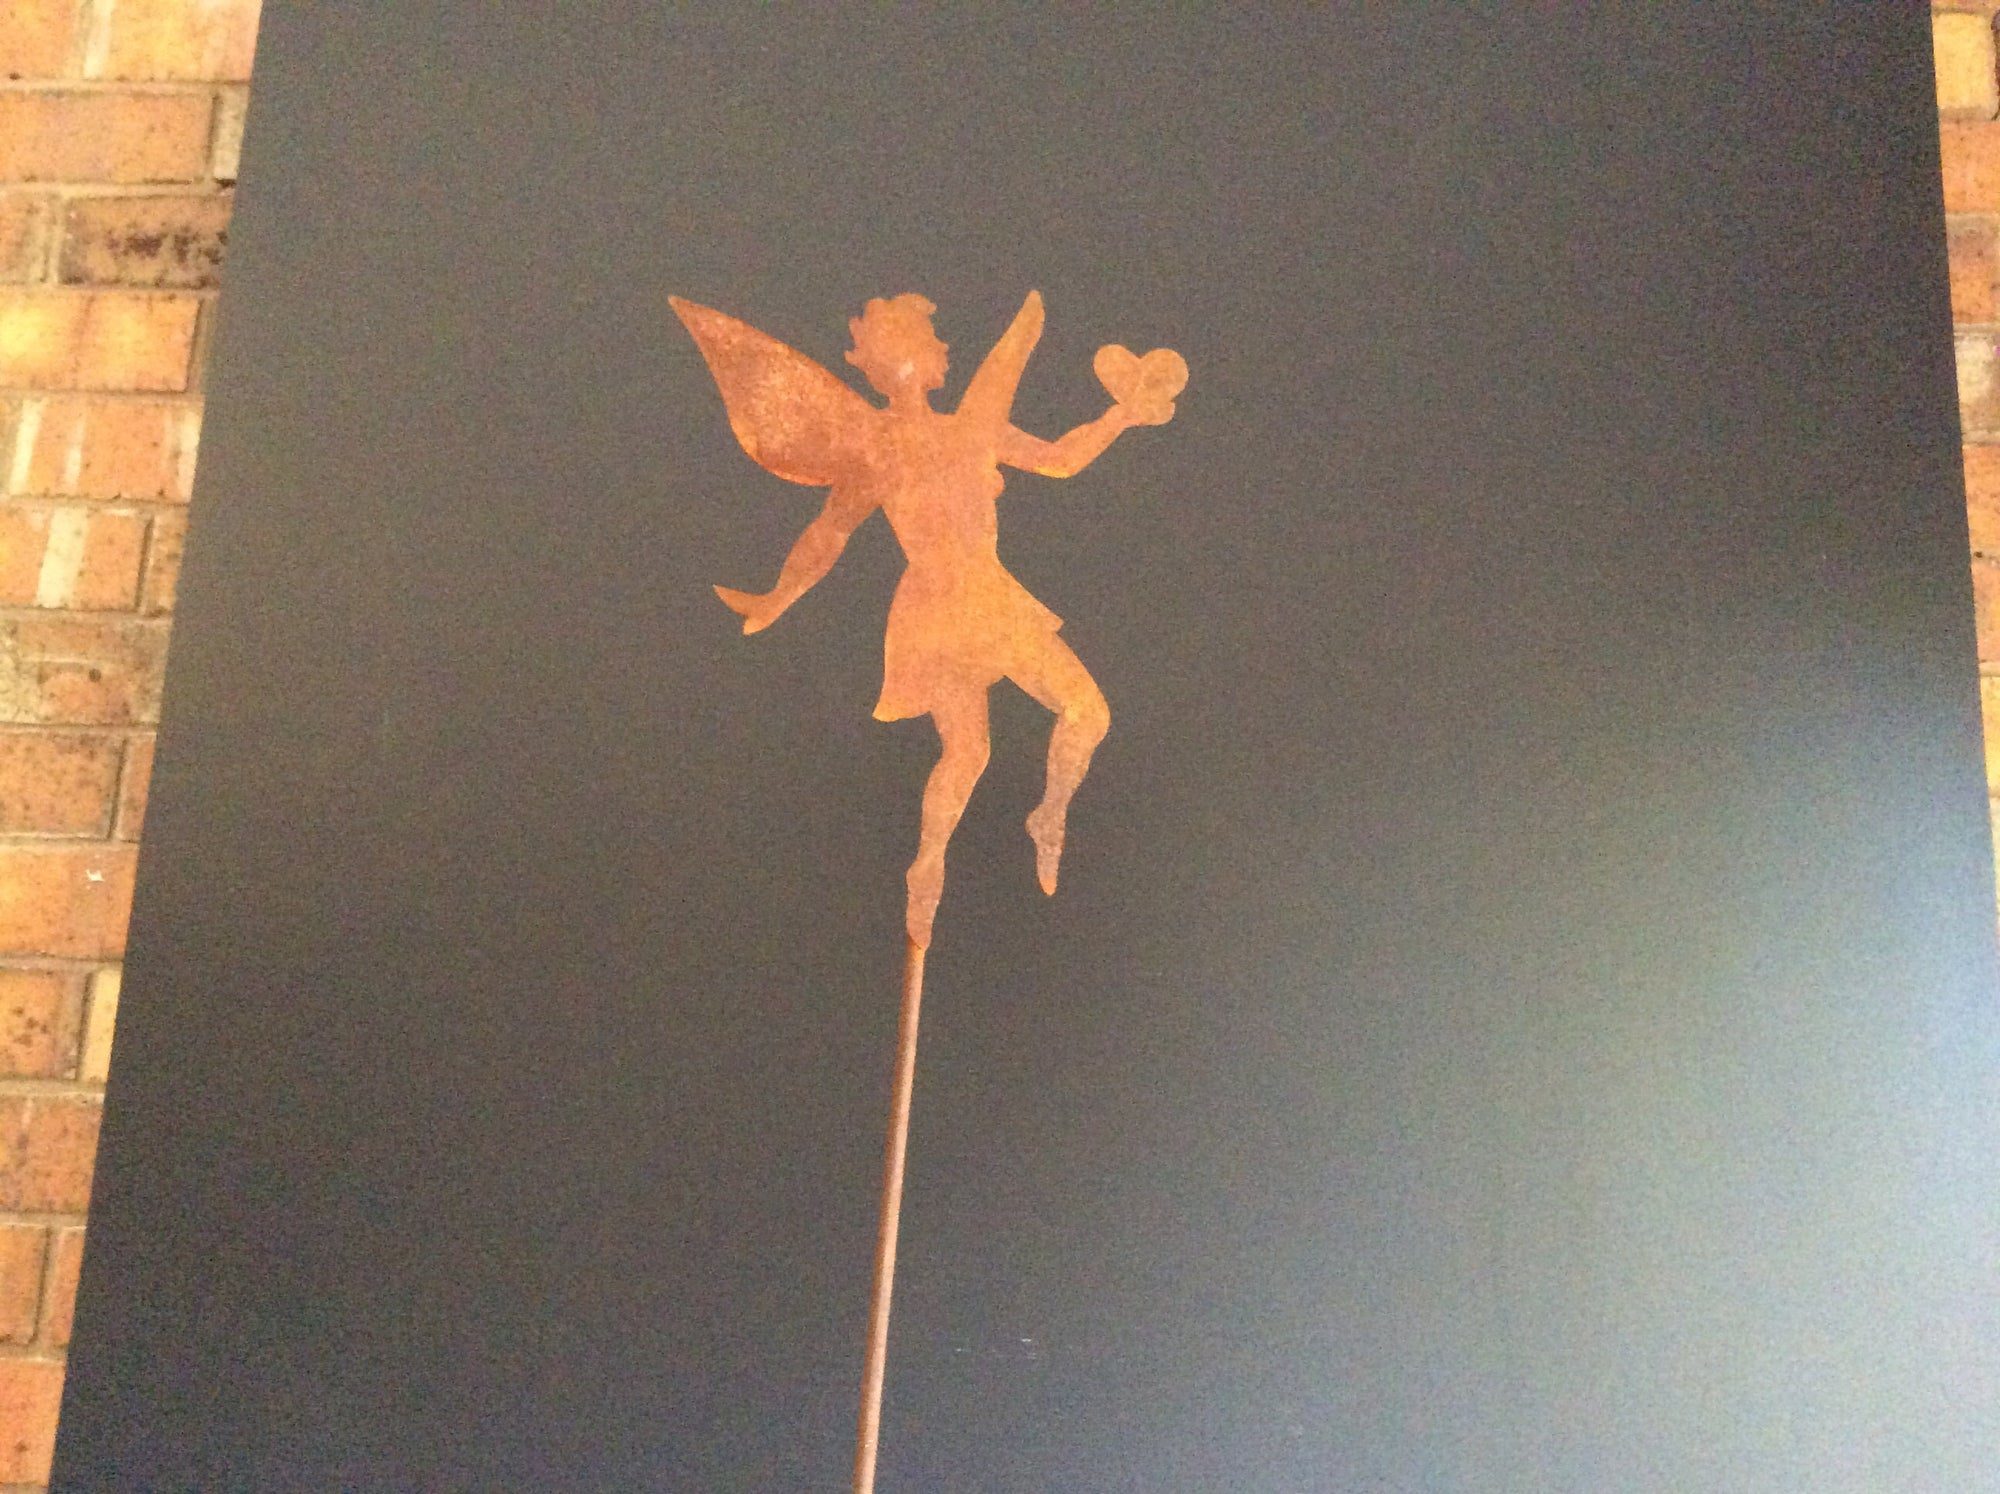 Rust Angel with Heart Stake